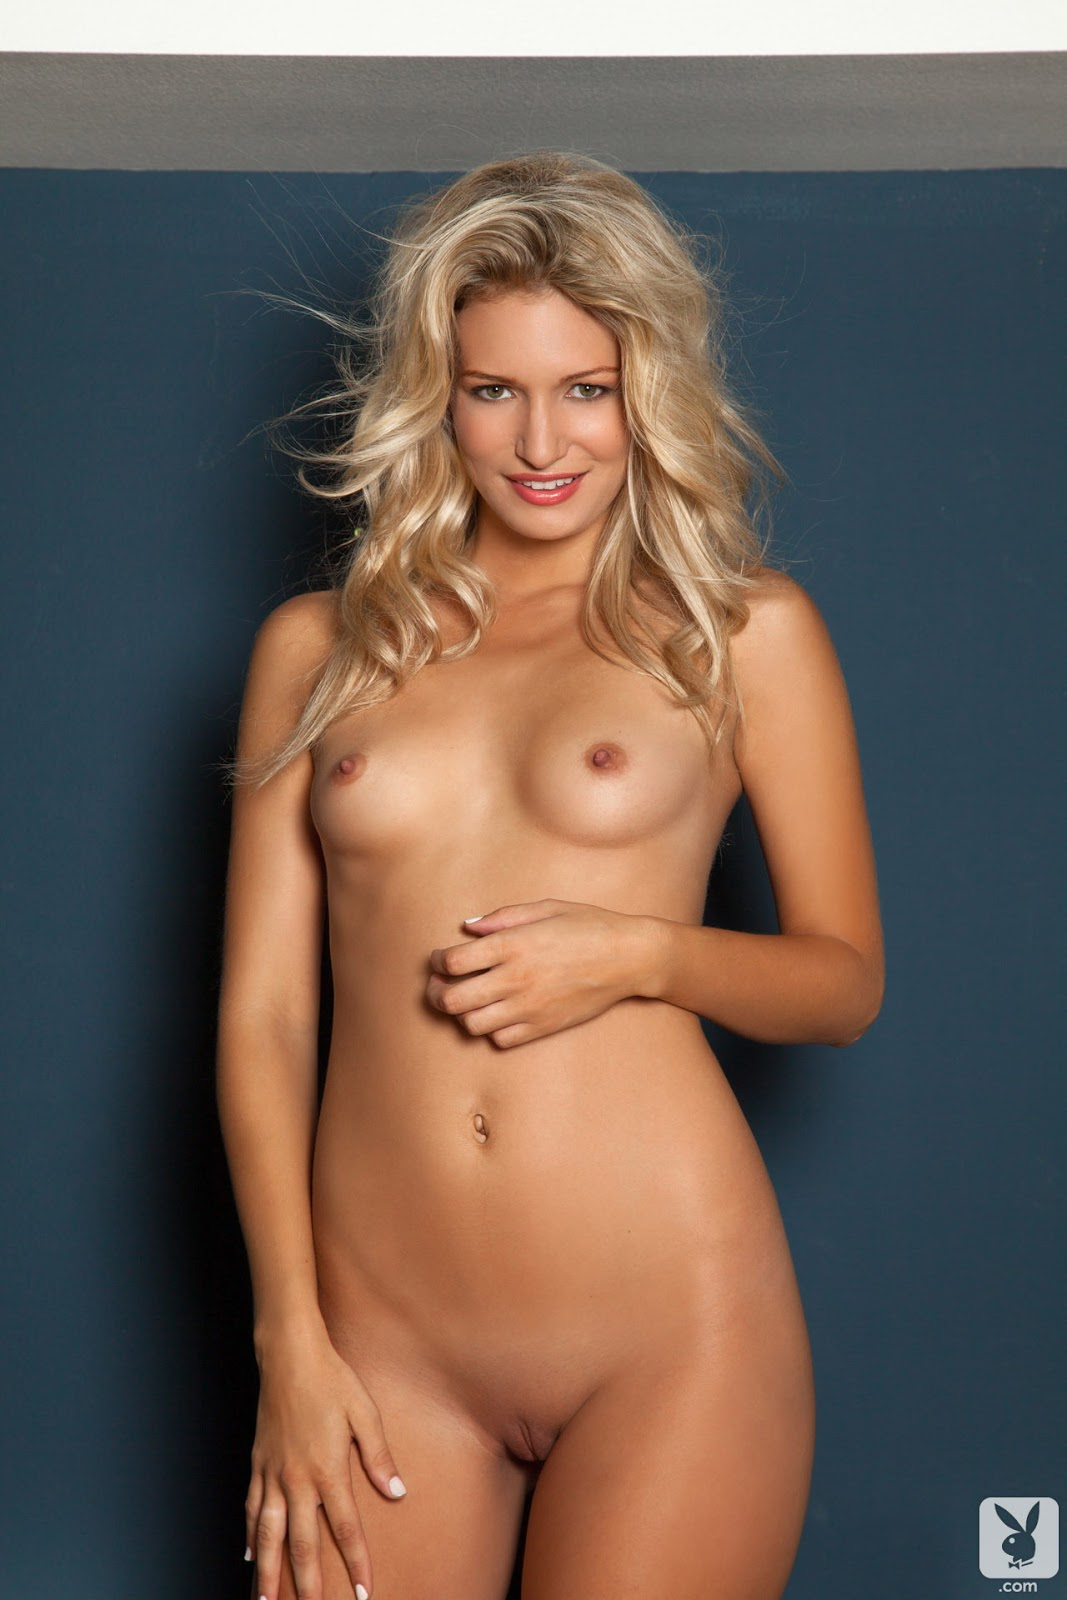 Marie nude mandy michaels